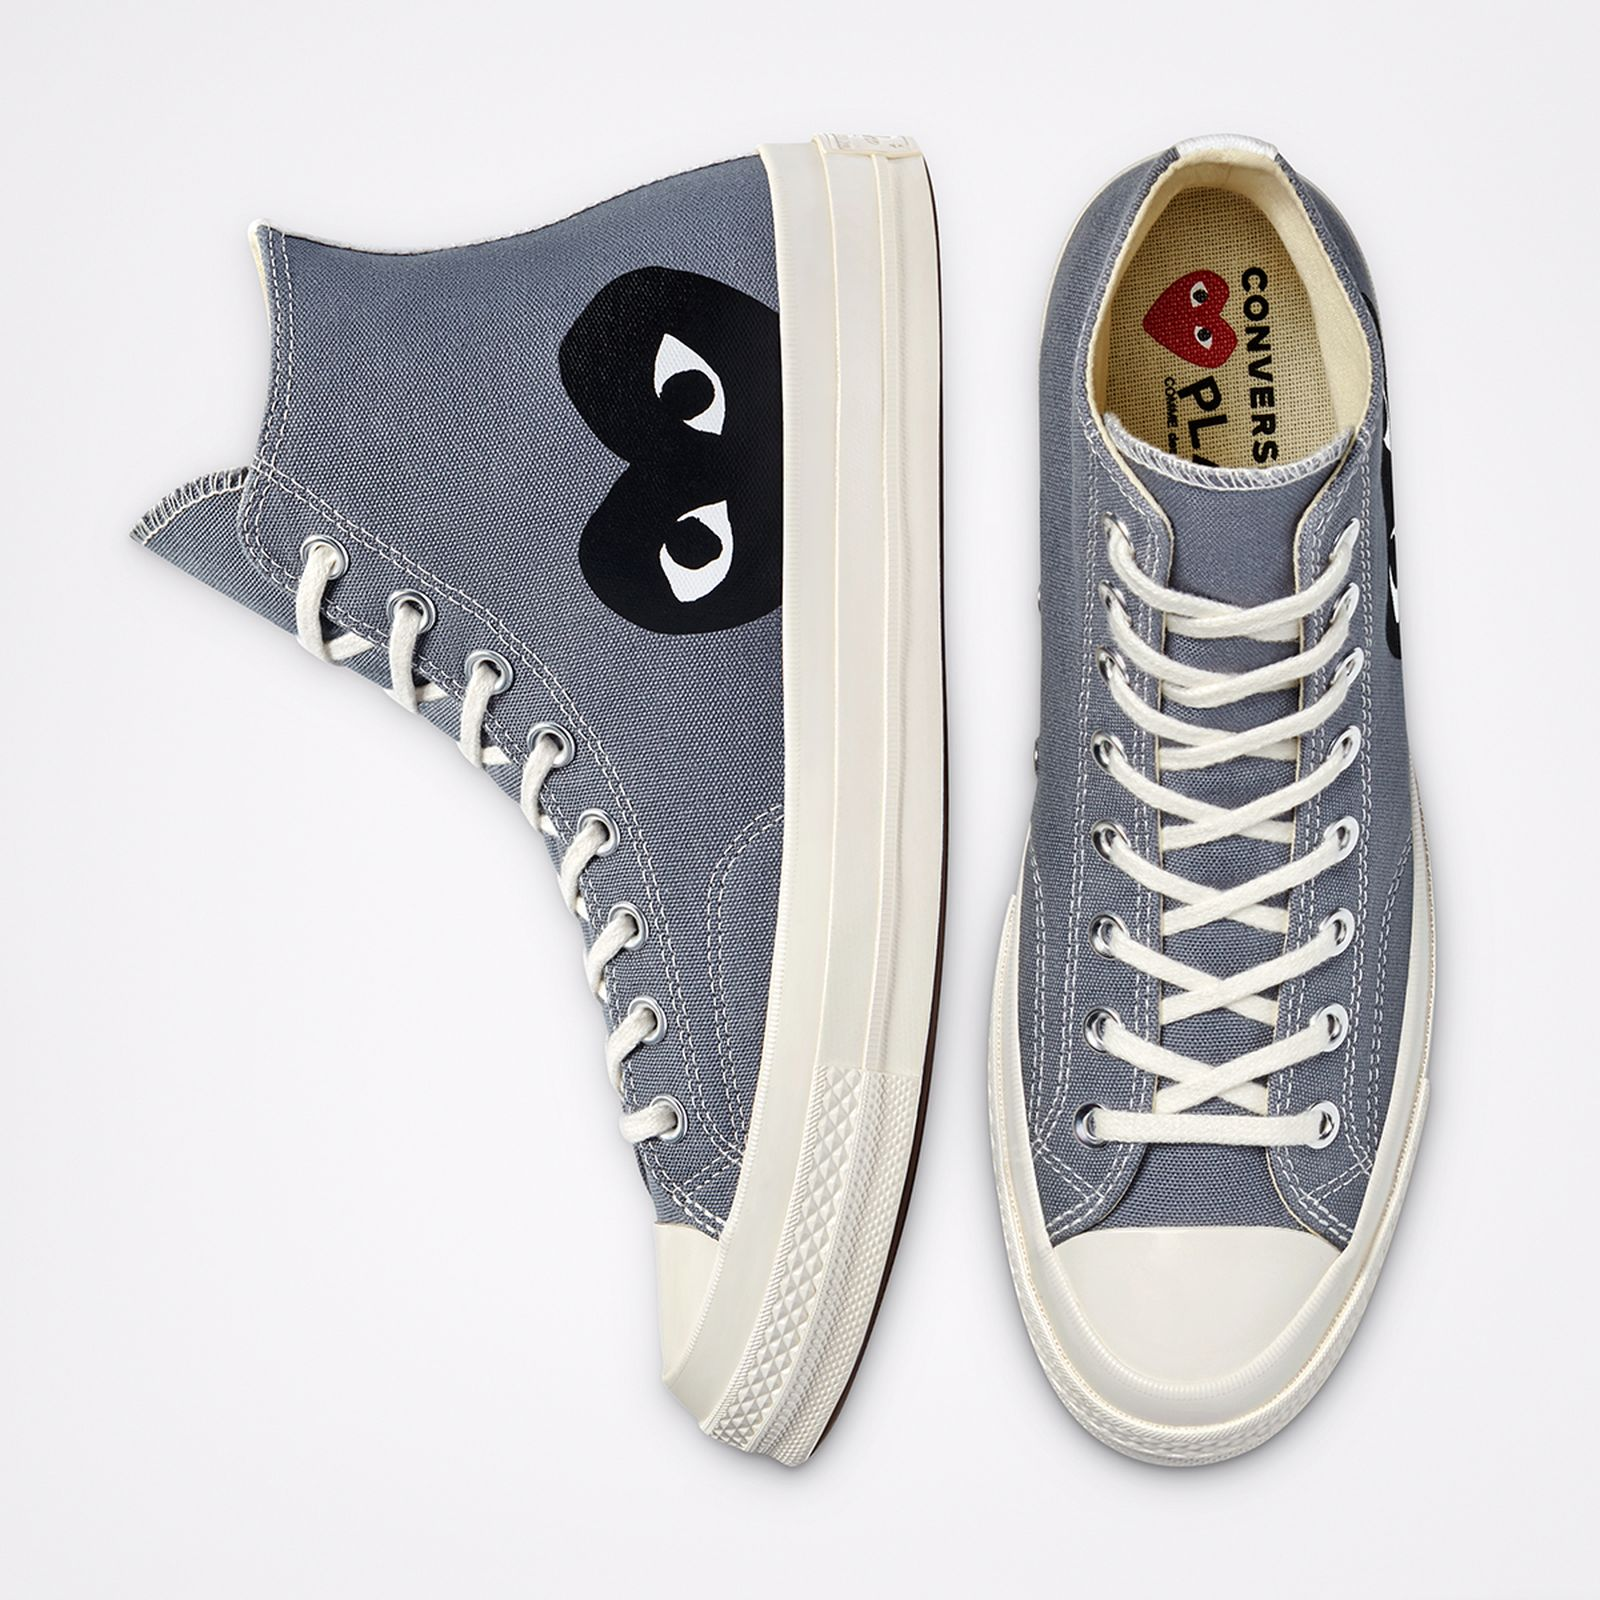 comme-des-garcons-play-converse-chuck-70-blue-gray-release-date-price-1-11